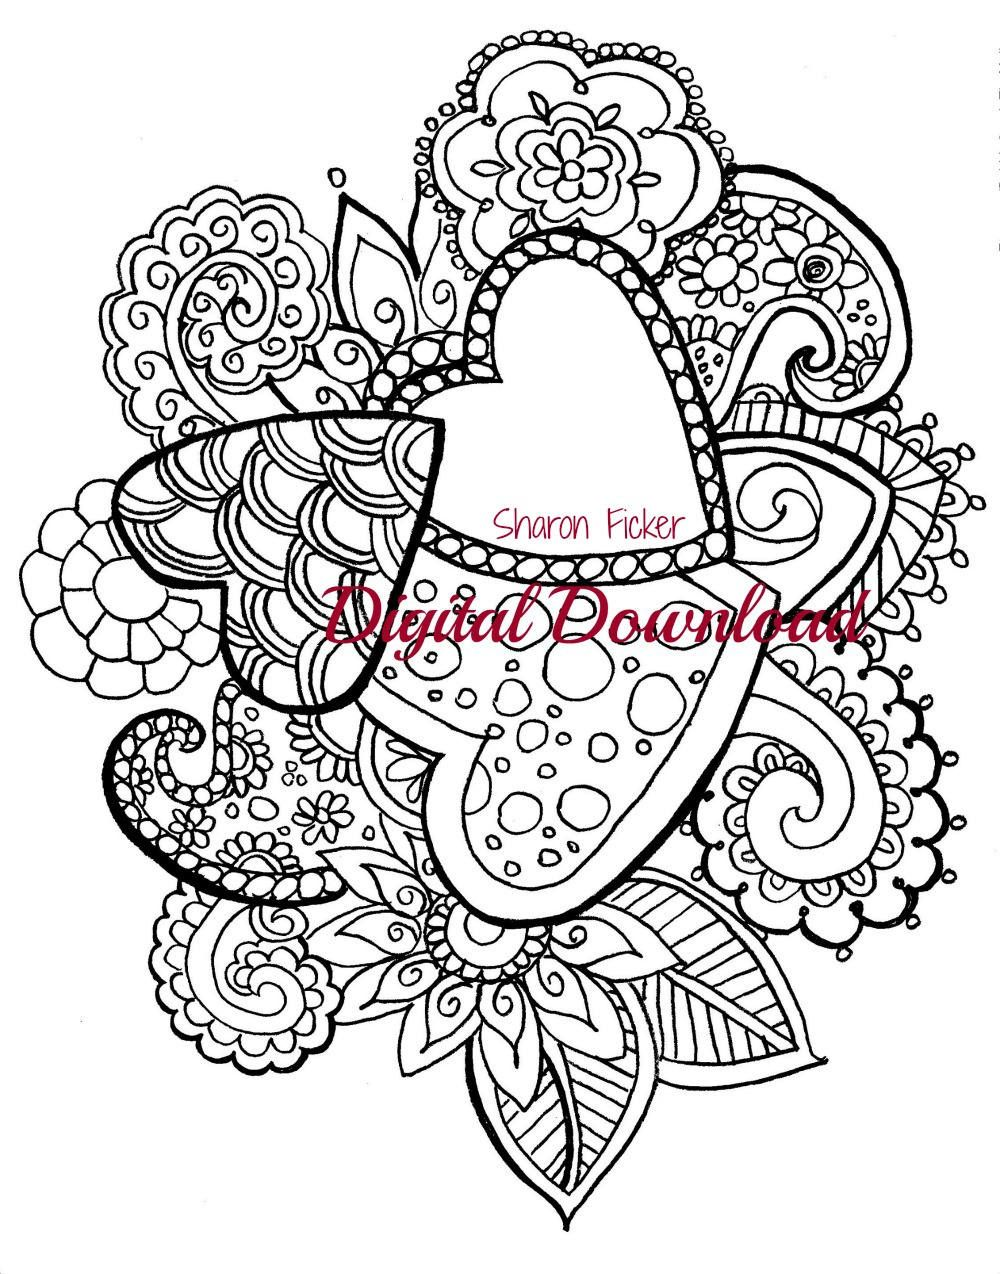 Printable Coloring Book Is Appropriate For Both Adults And Children Studies Have Shown That